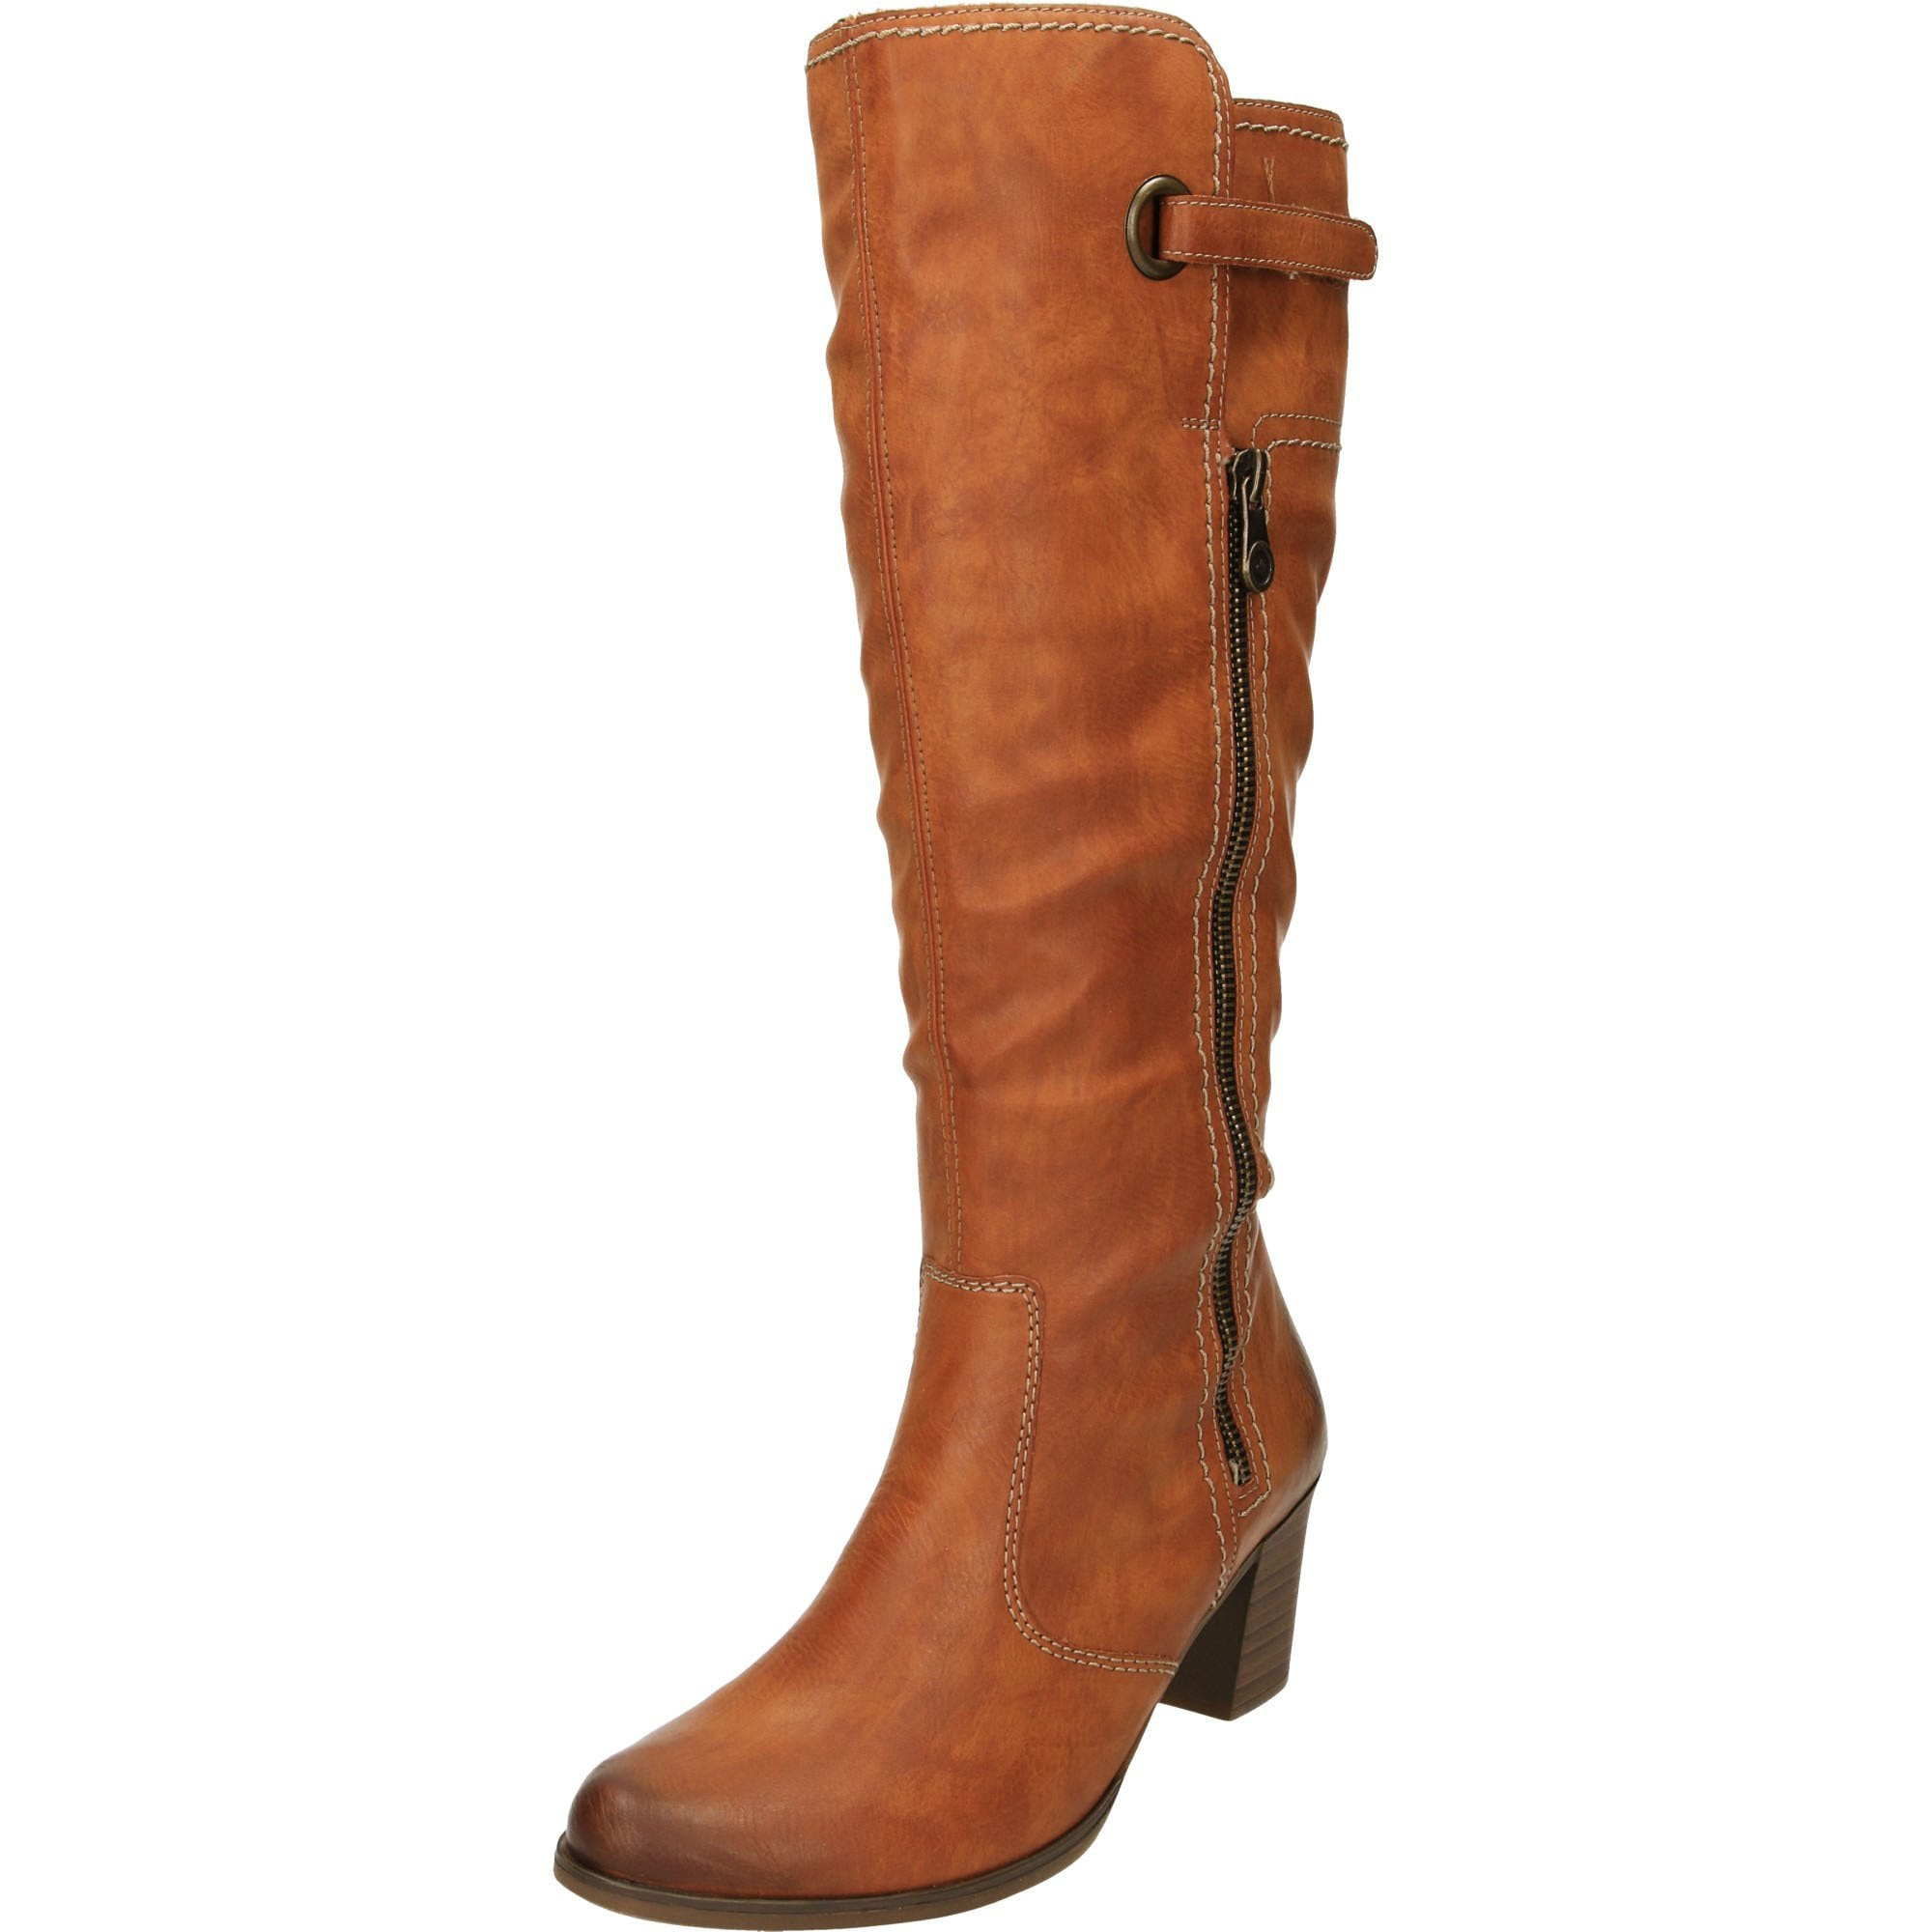 Stiefel Overknees Rieker Gr. 39 in 45768 Marl for €20.00